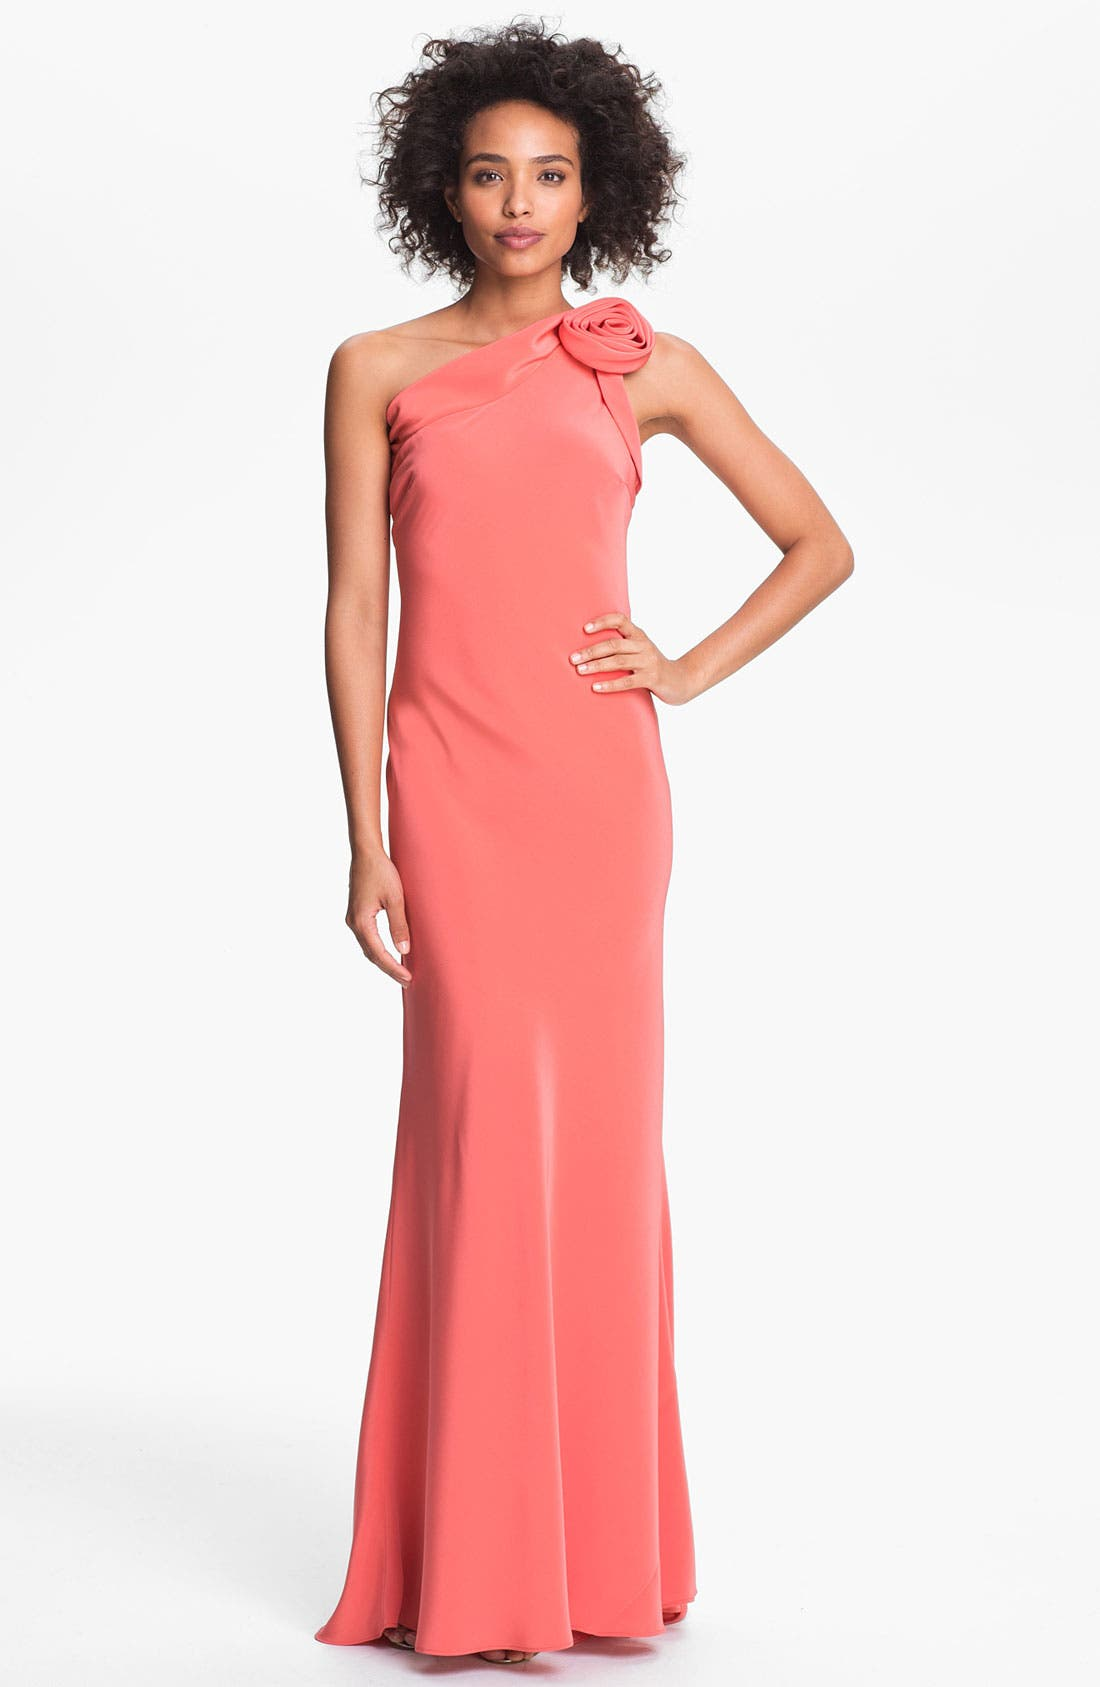 Alternate Image 1 Selected - A.B.S. by Allen Schwartz One Shoulder Gown